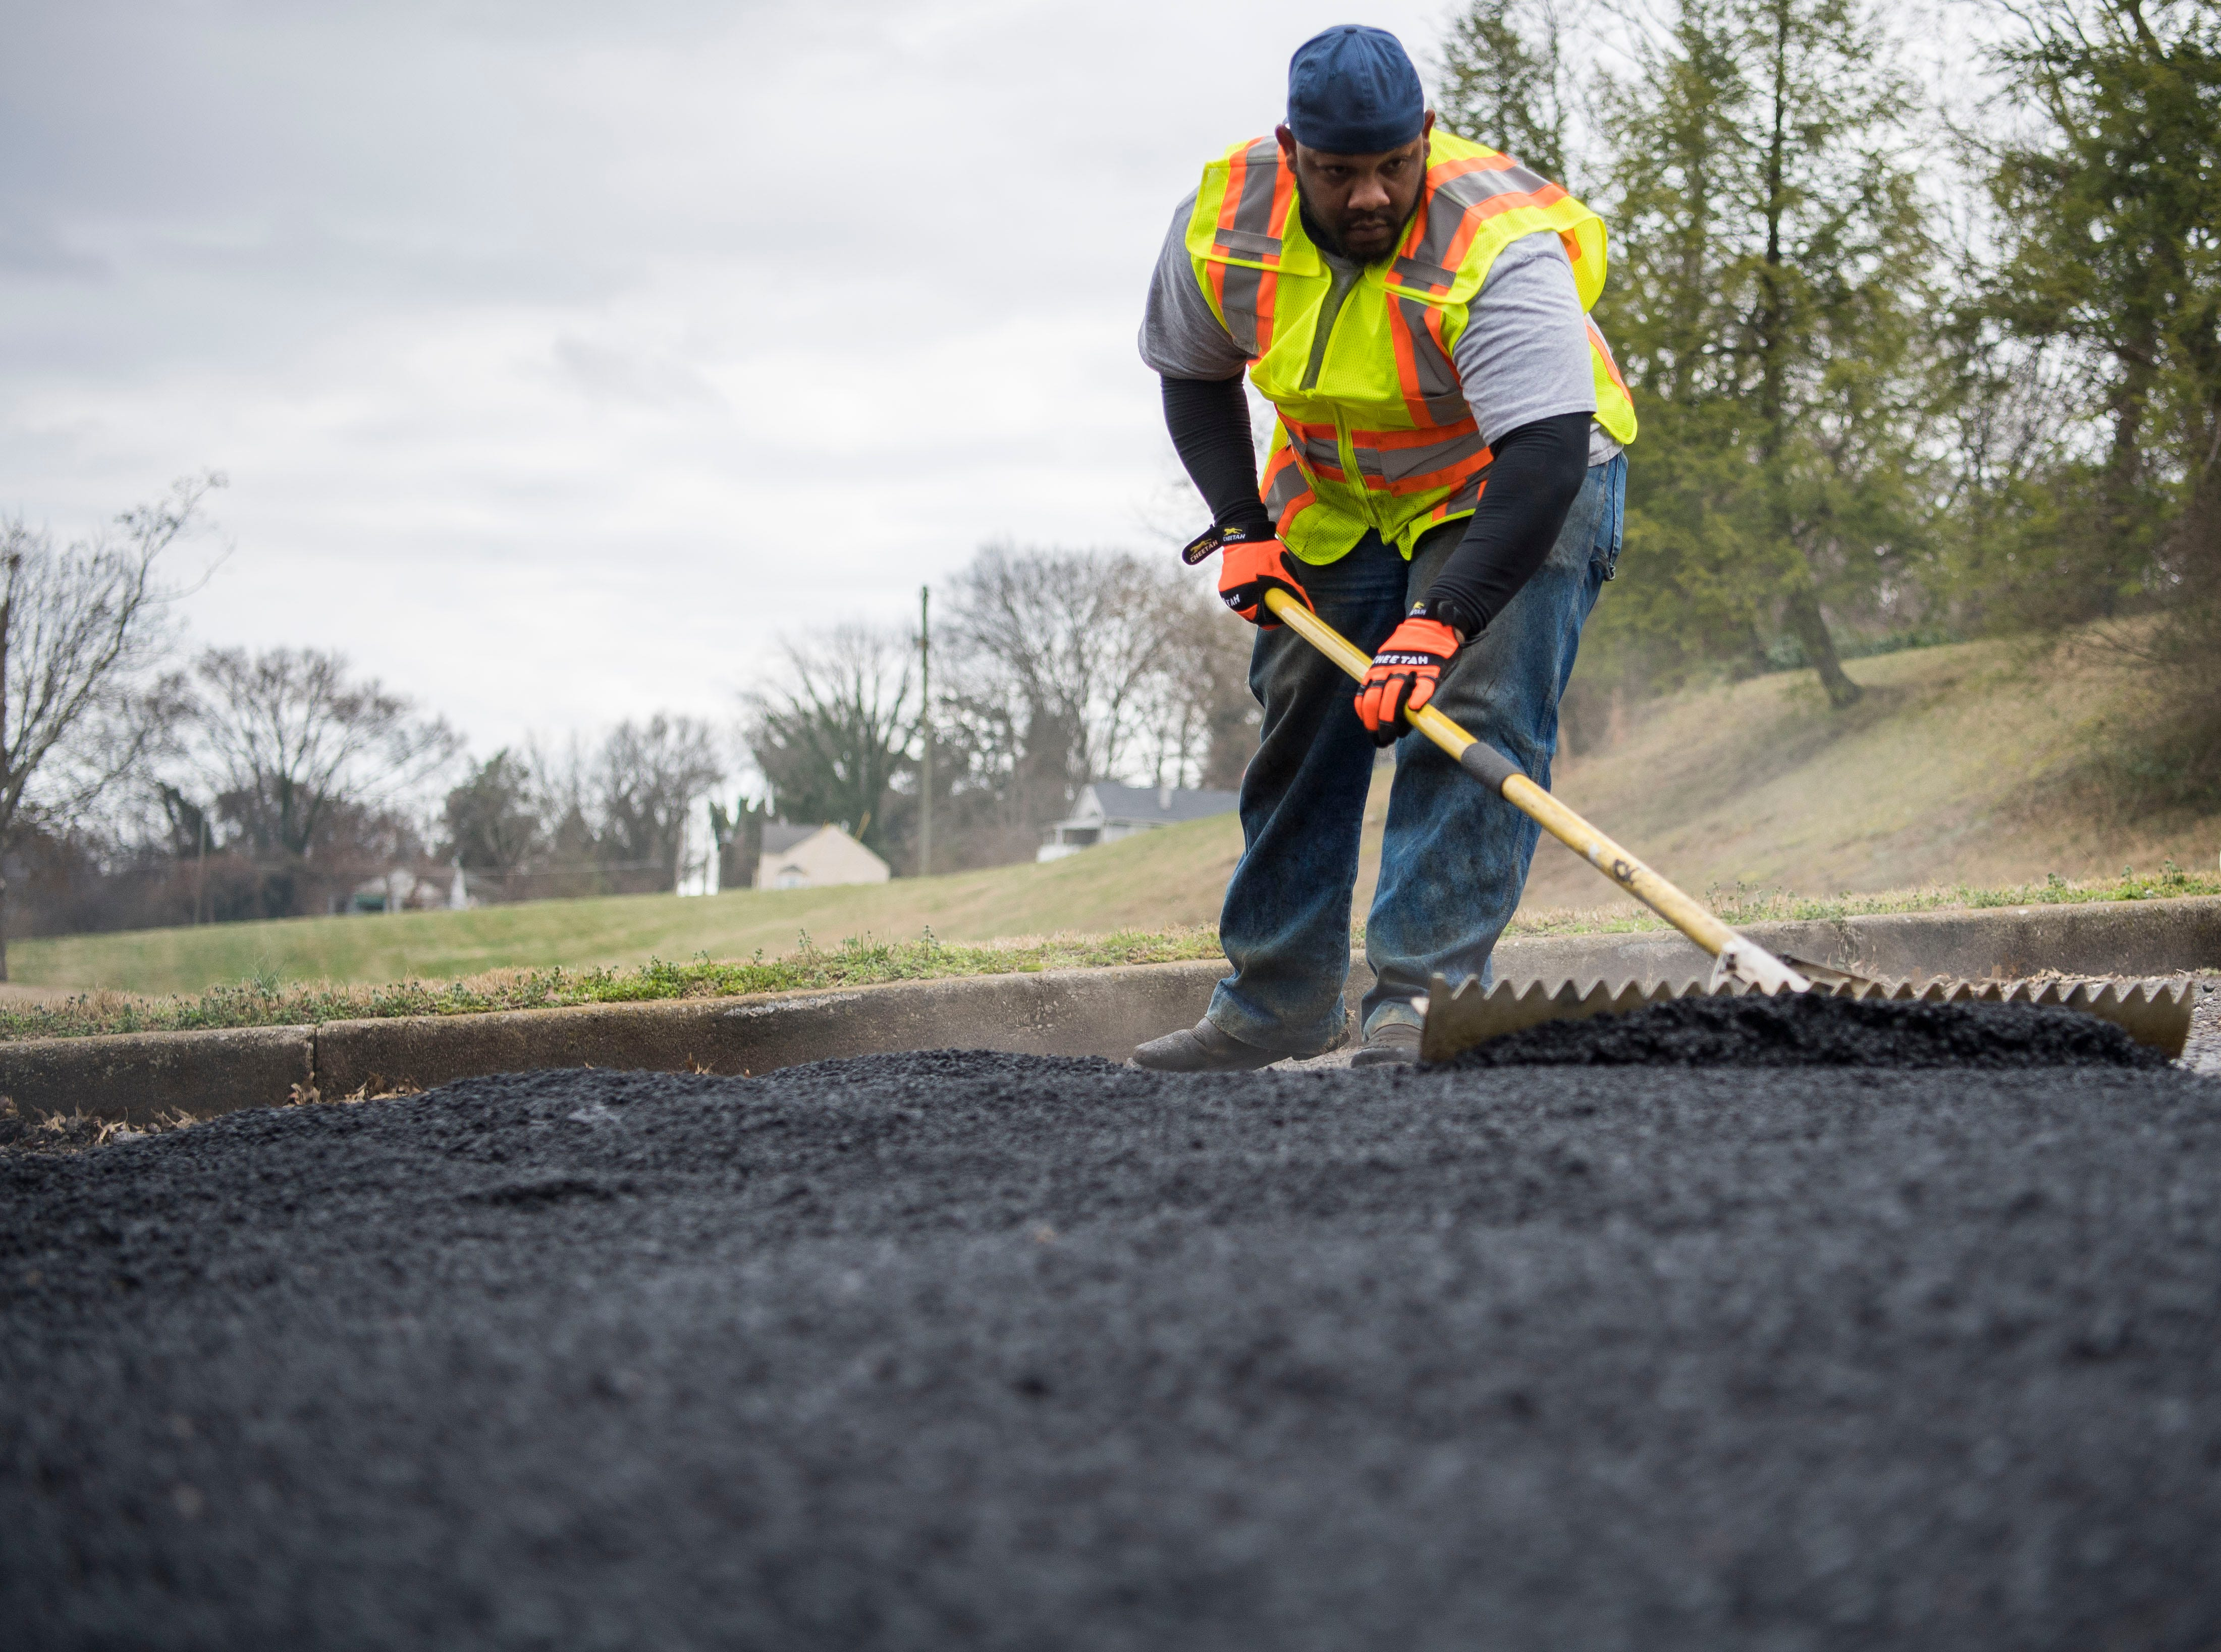 City of Knoxville employee Frankie Robinson levels asphalt as potholes are filled by a City of Knoxville crew on Sanders Lane in East Knoxville, Thursday, Feb. 7, 2018